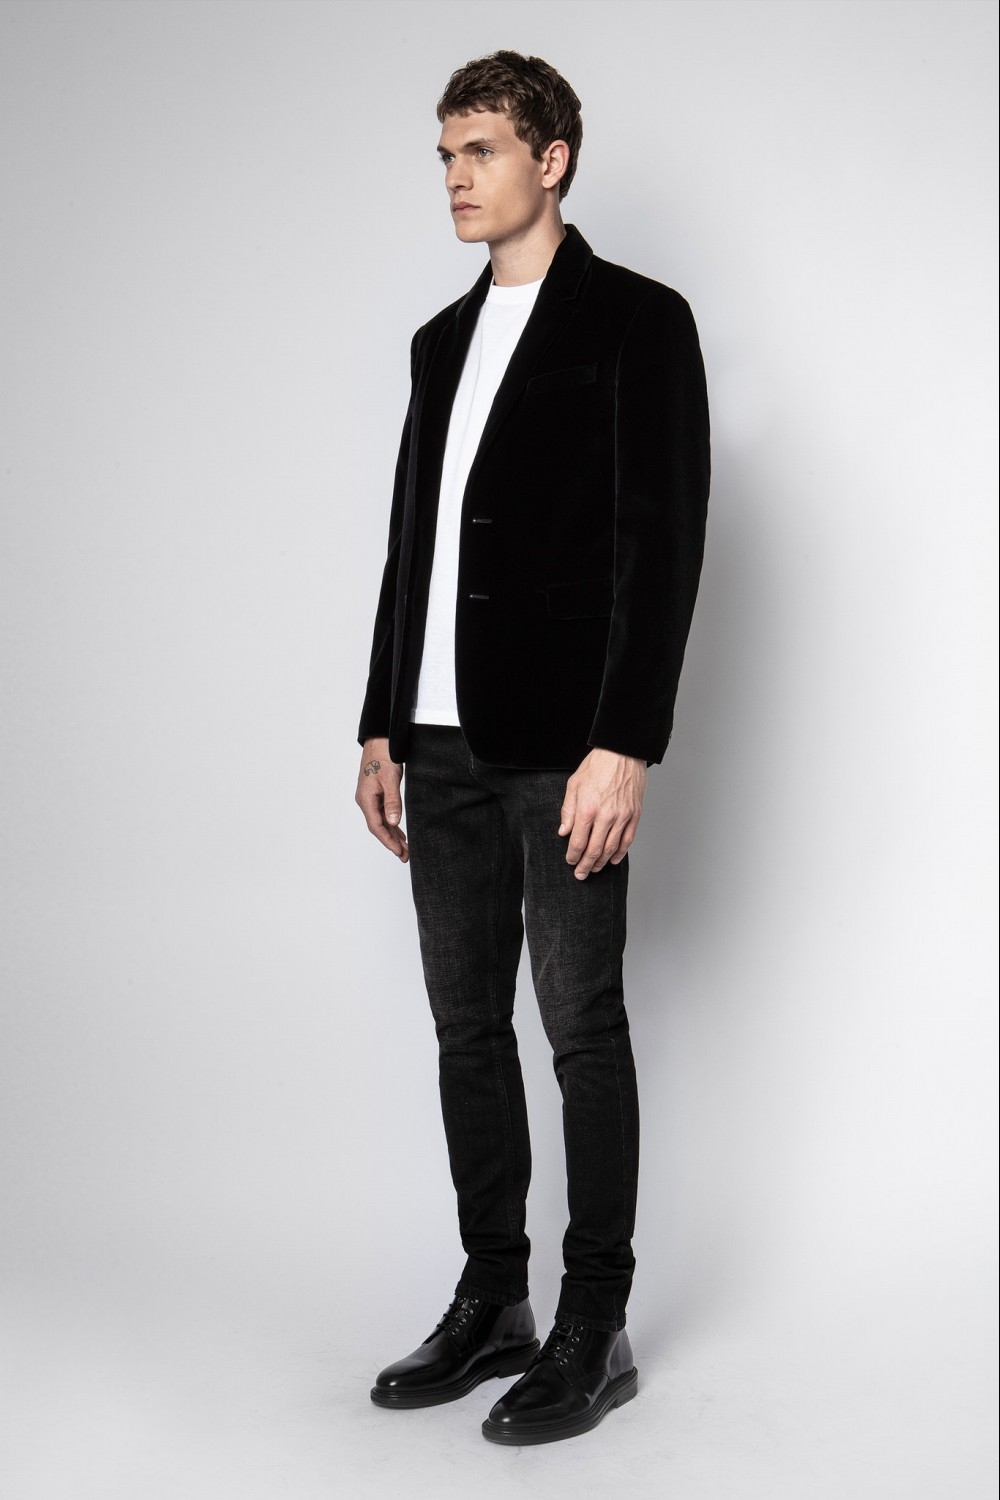 VALFRIED VELVET JACKET